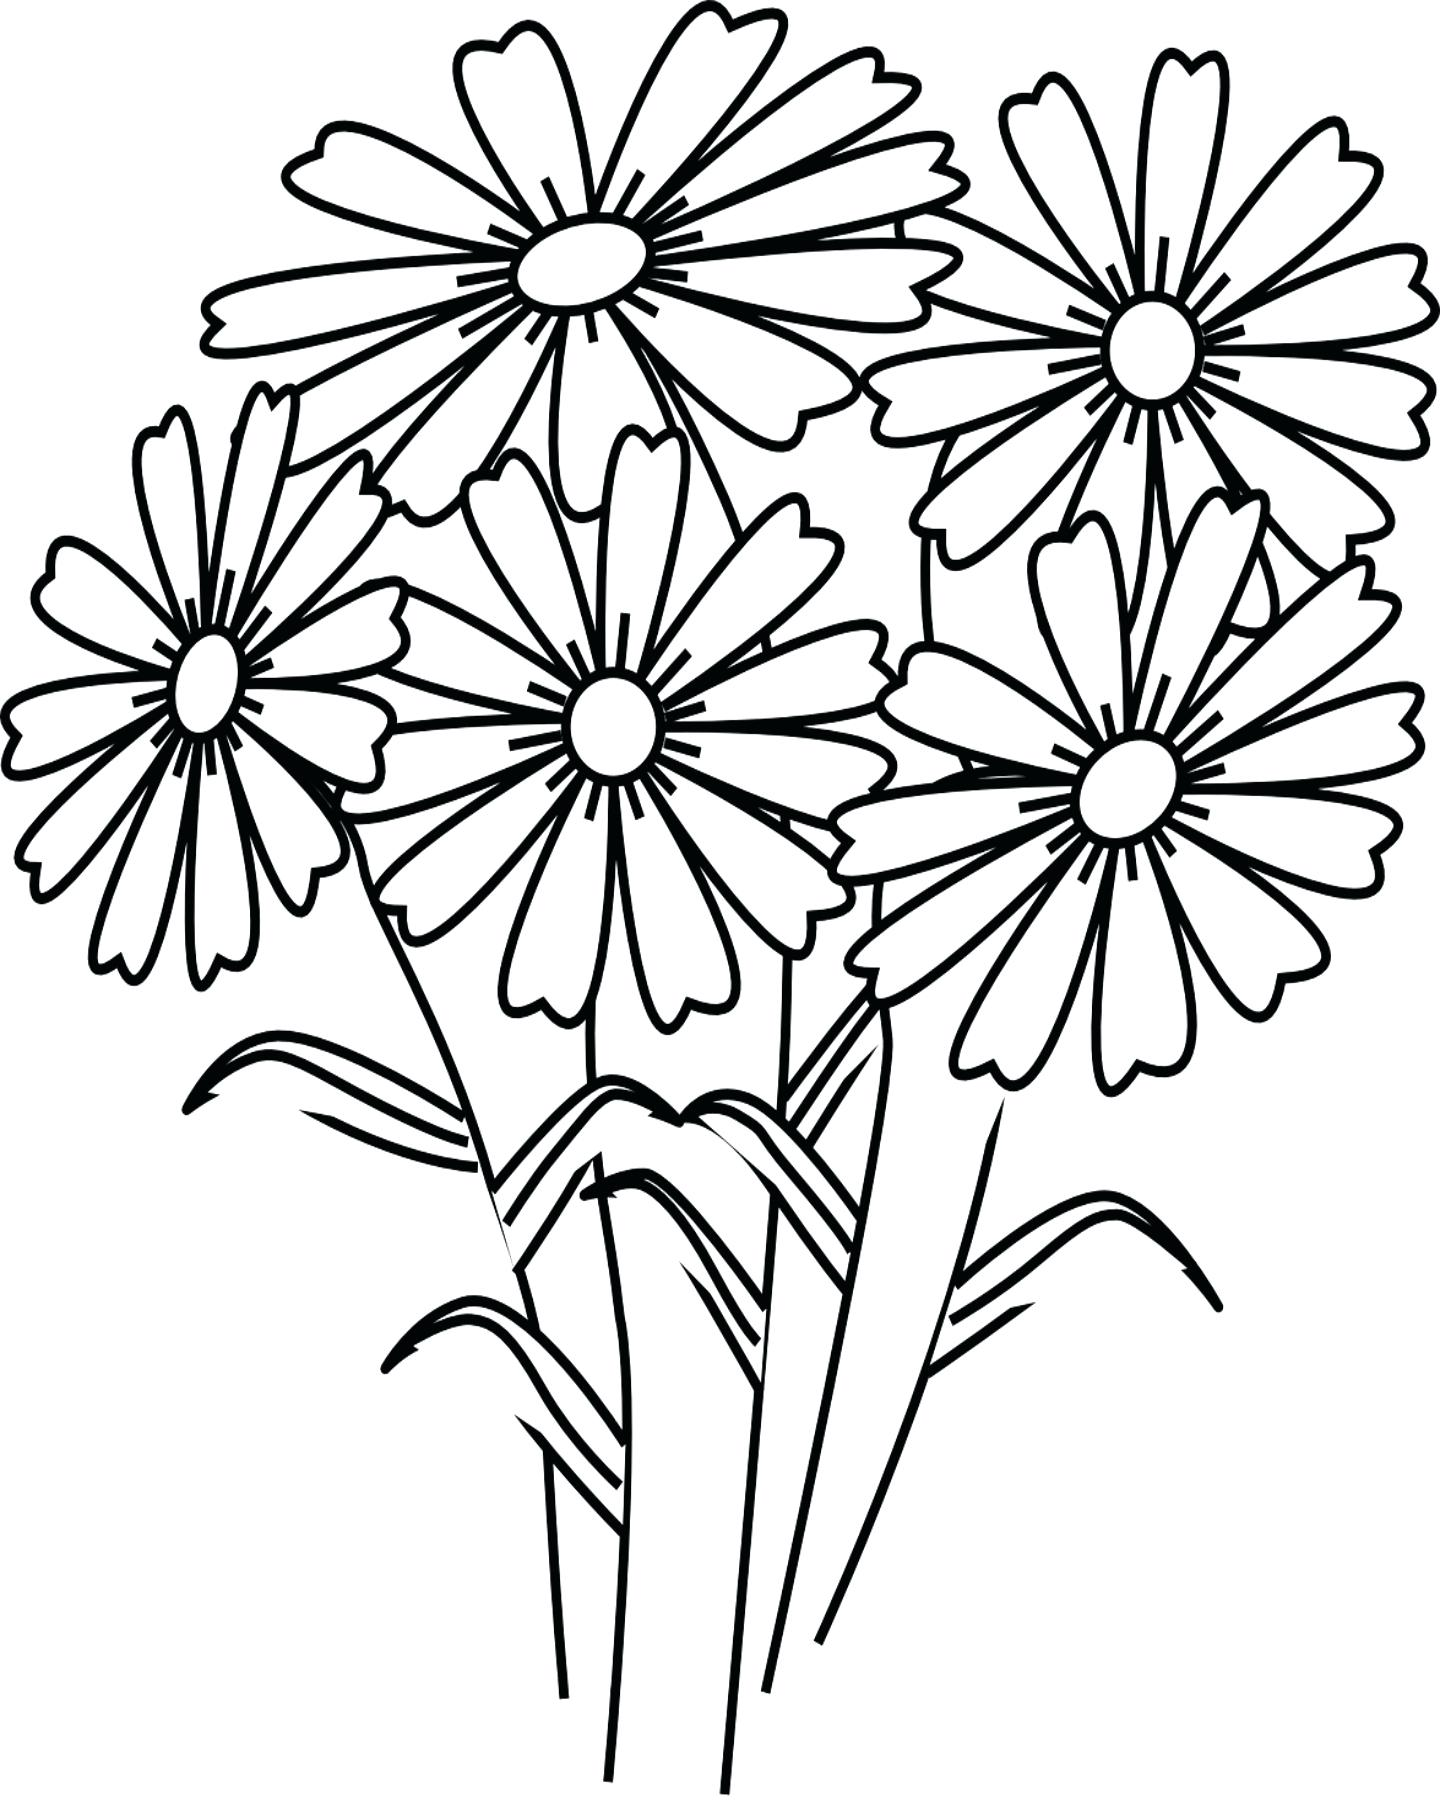 1440x1800 Coloring Realistic Flower Coloring Pages